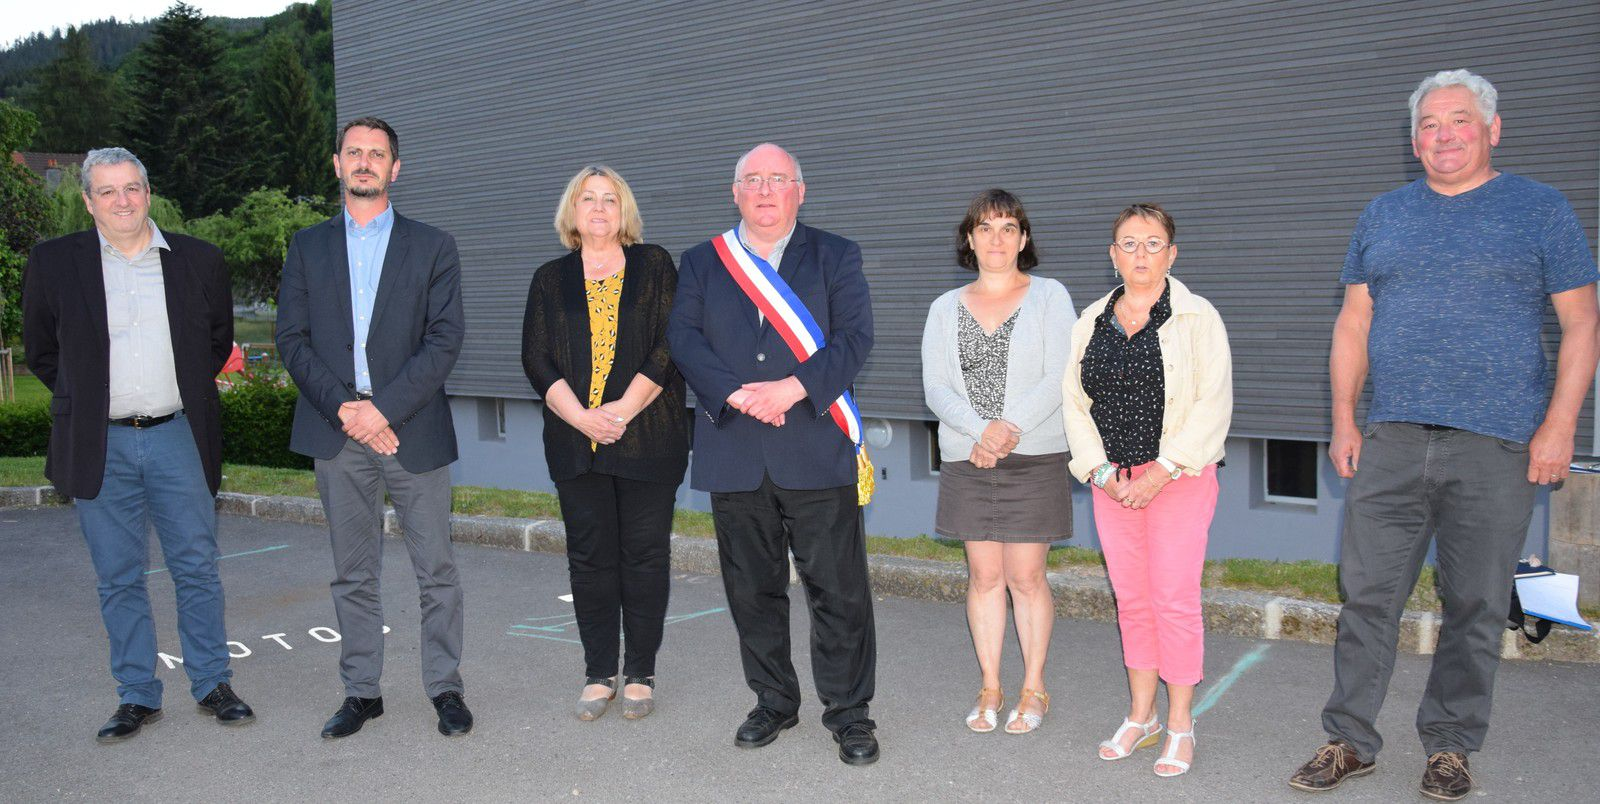 Plainfaing : Le Maire et ses adjoints - photo mairie Plainfaing